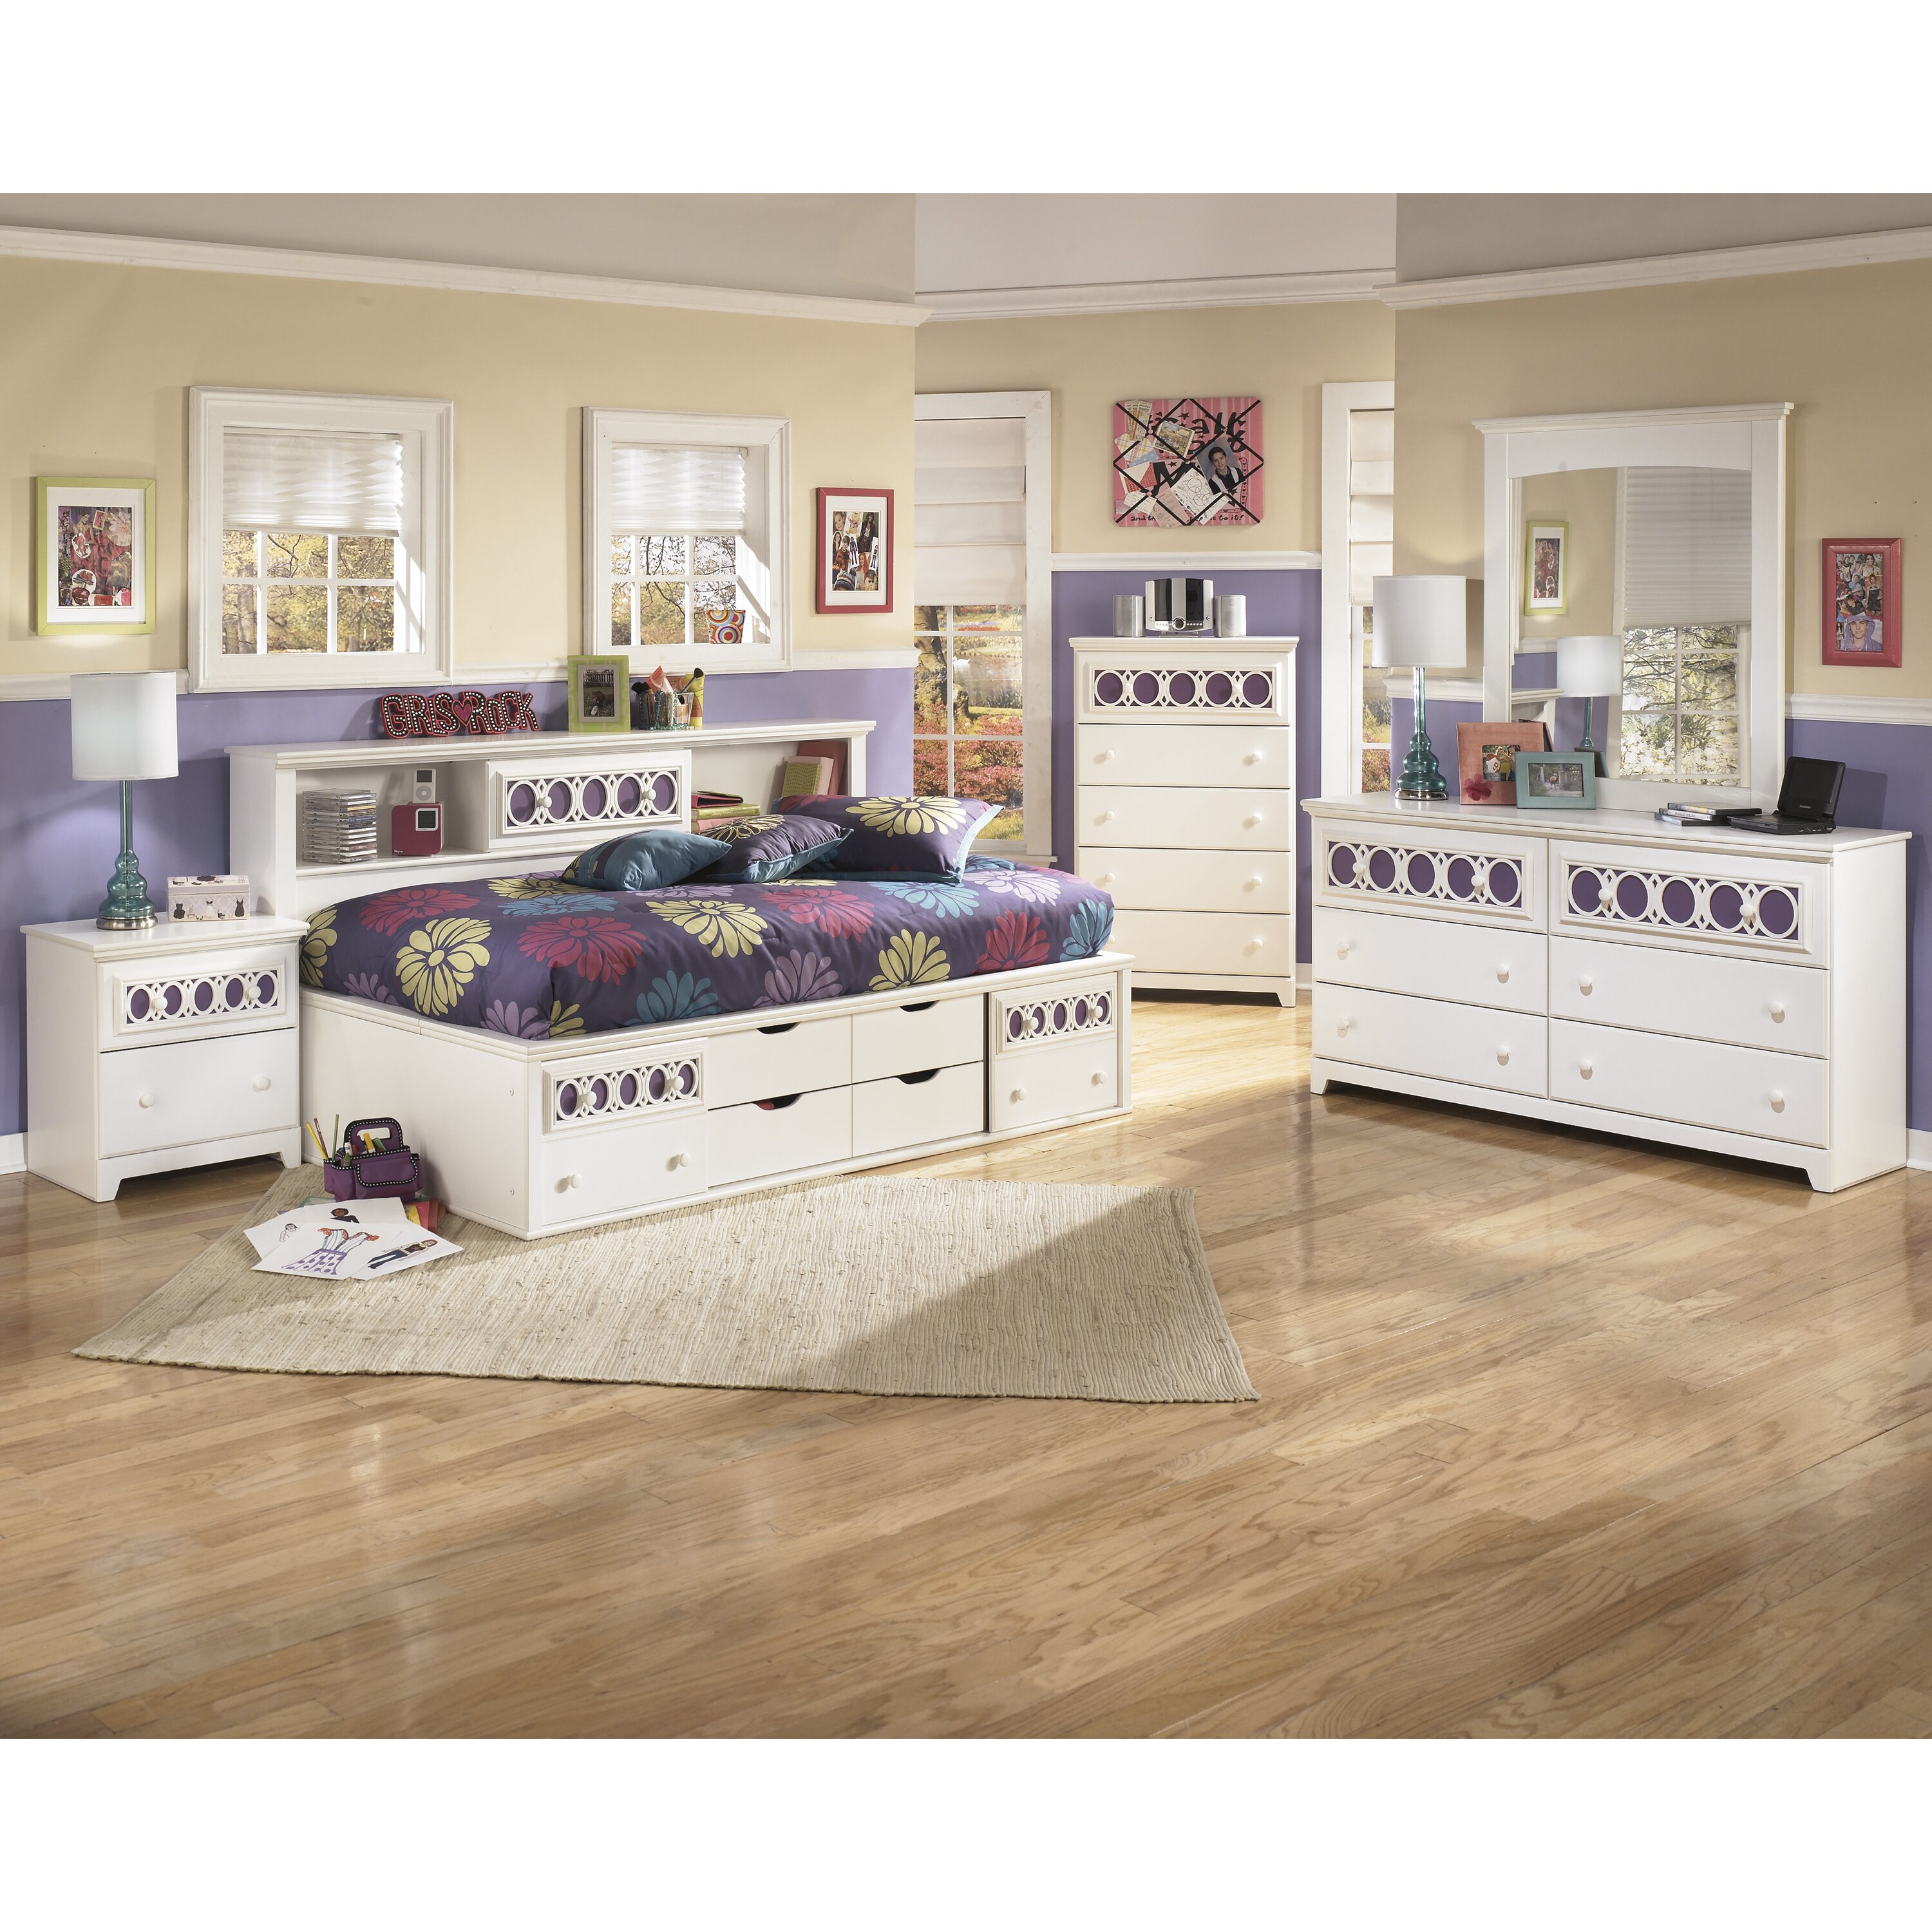 Signature design by ashley zayley twin full captain bed - Ashley furniture full bedroom sets ...